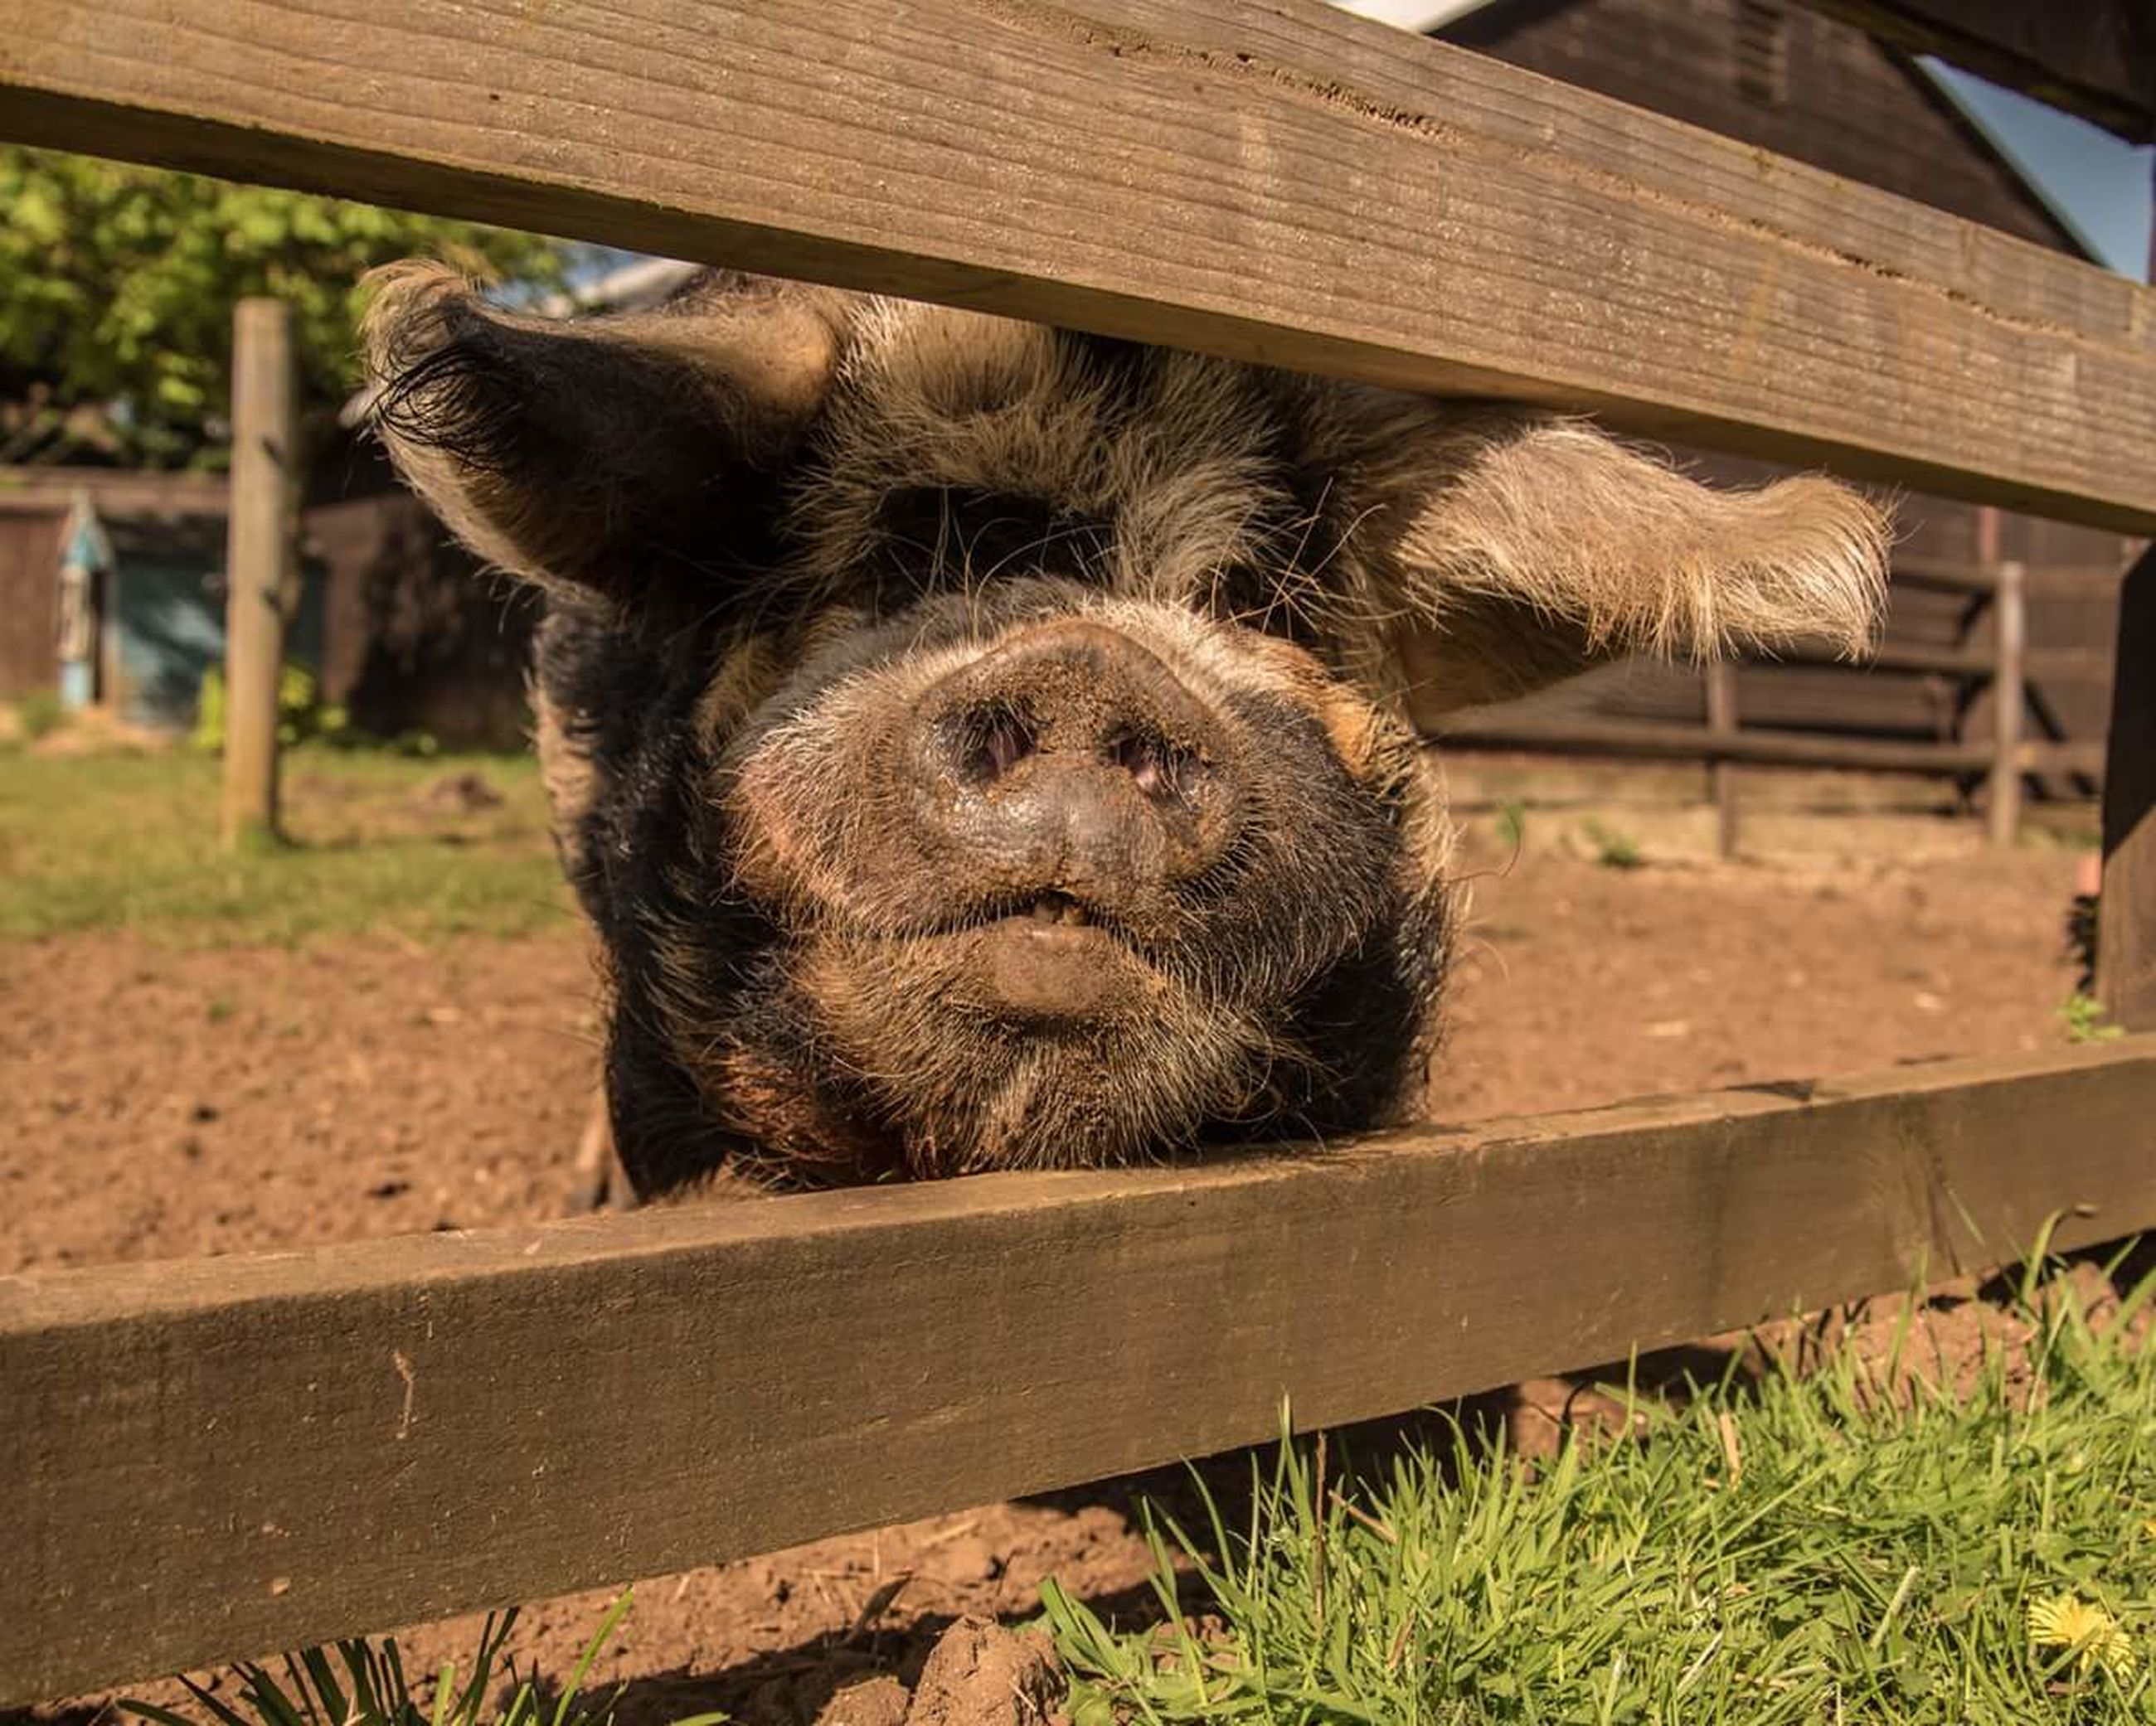 mammal, animal, animal themes, one animal, vertebrate, animal wildlife, wood - material, no people, day, animals in the wild, domestic animals, brown, pets, nature, domestic, zoo, relaxation, outdoors, boundary, portrait, animal head, animal pen, herbivorous